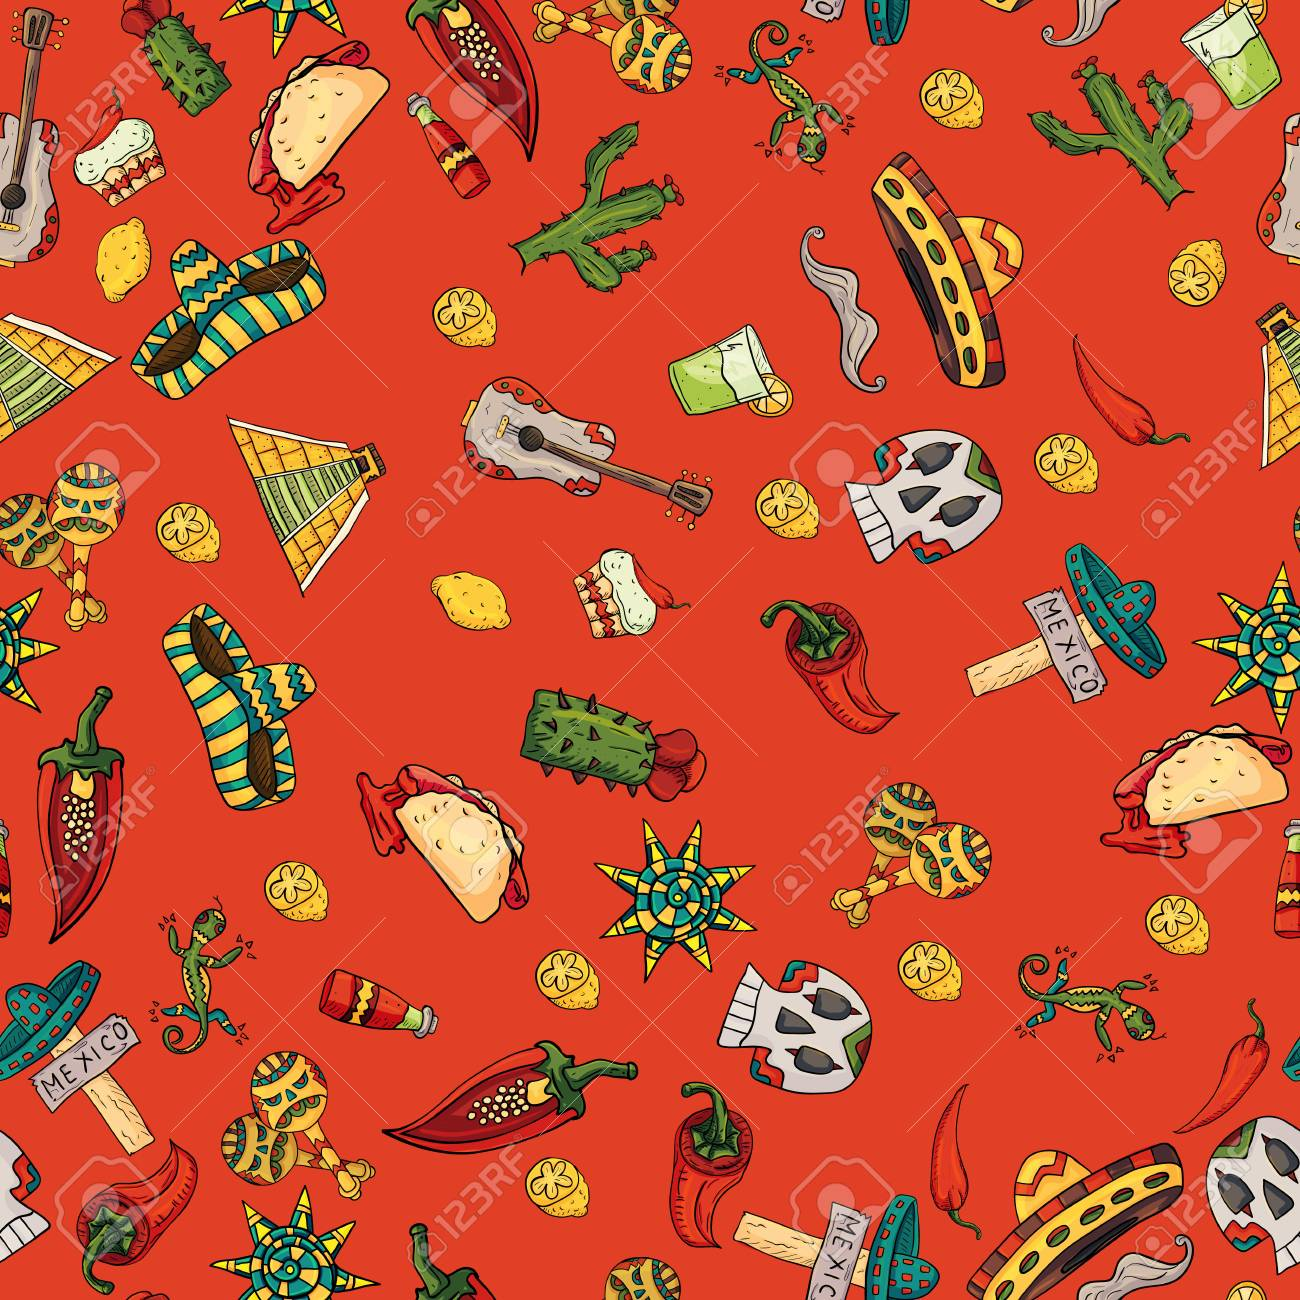 Seamless Pattern Vector Illustration On Isolated Background 1300x1300